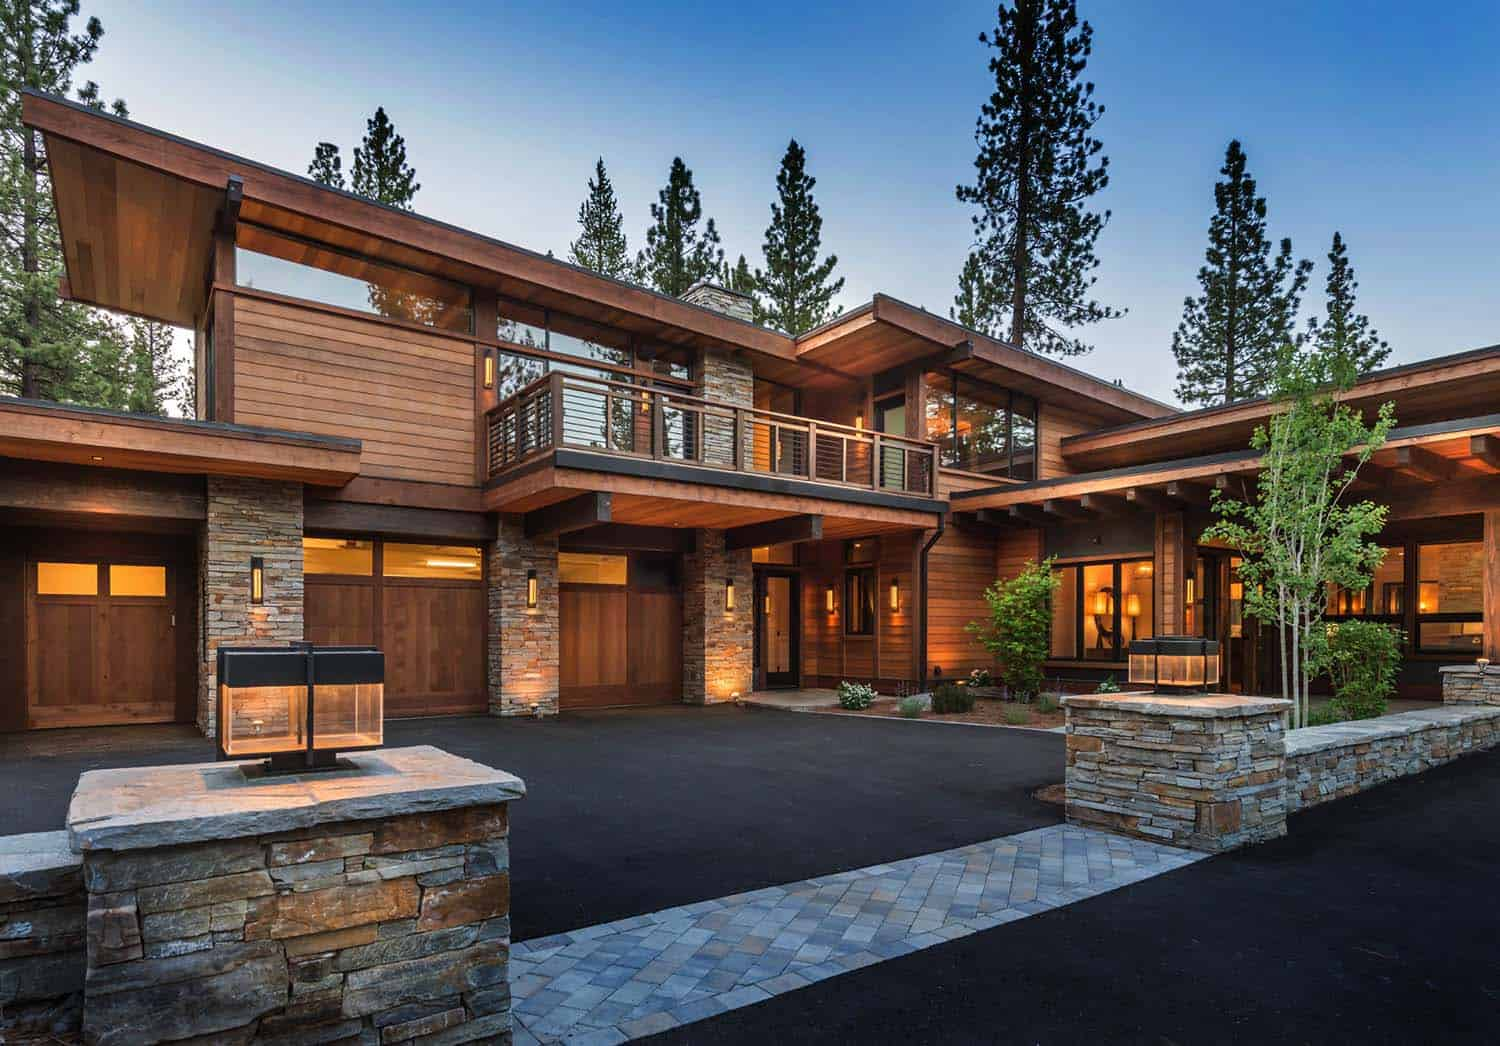 Mountain modern home in martis camp with indoor outdoor living for Modern rustic house plans